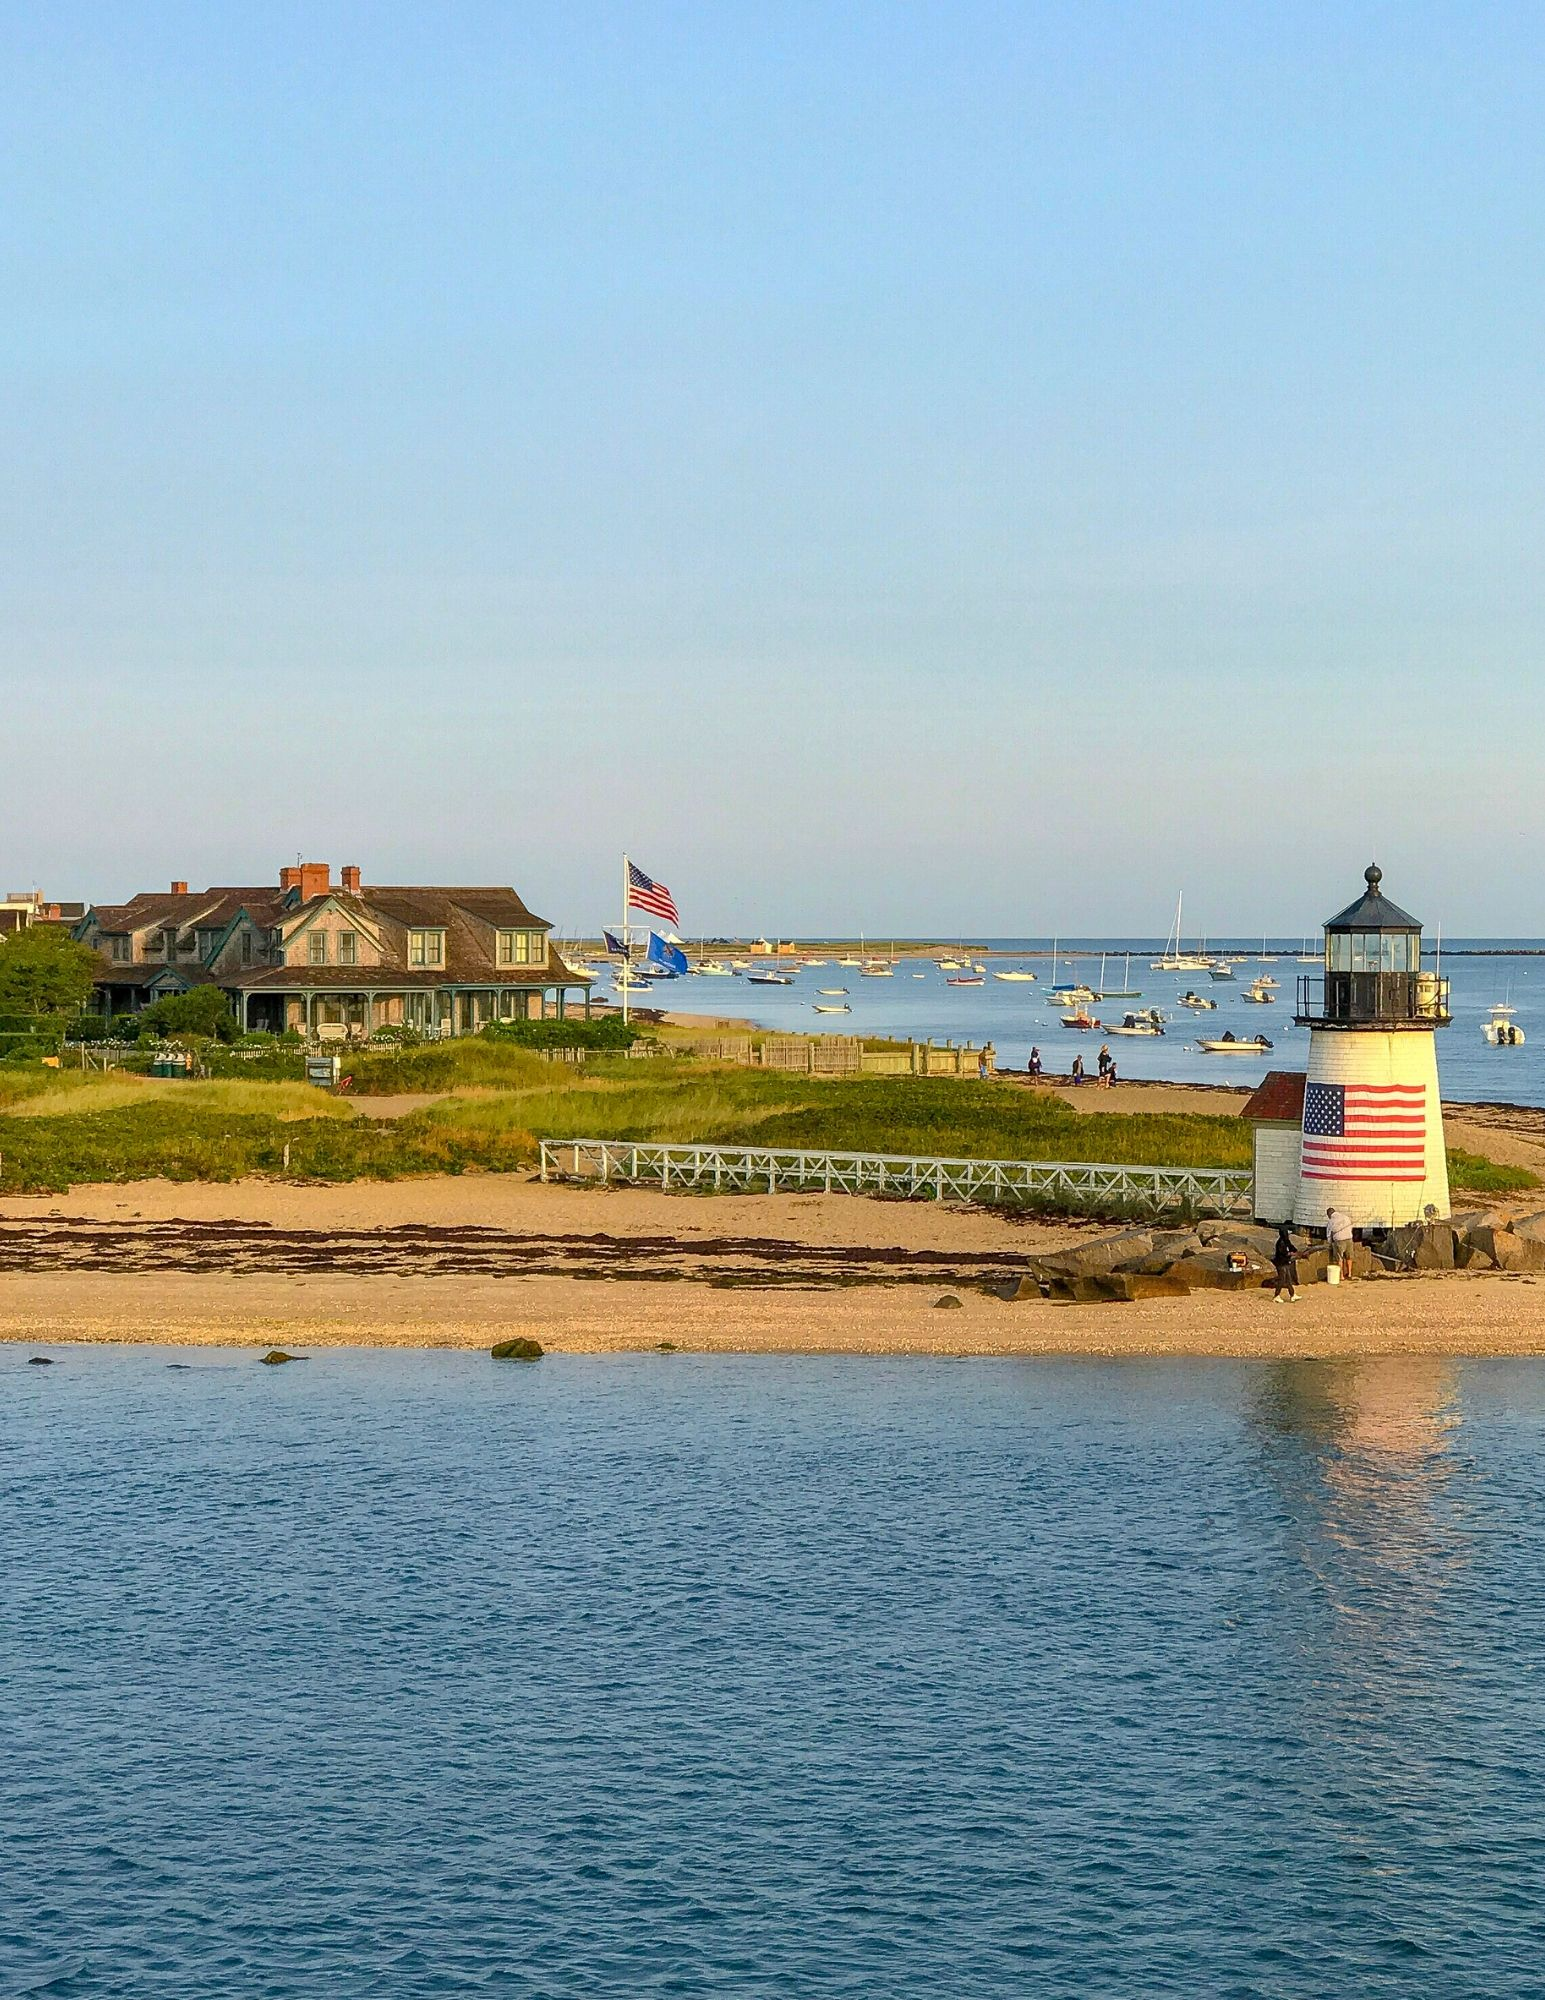 Scenes from Nantucket Brant Point-2